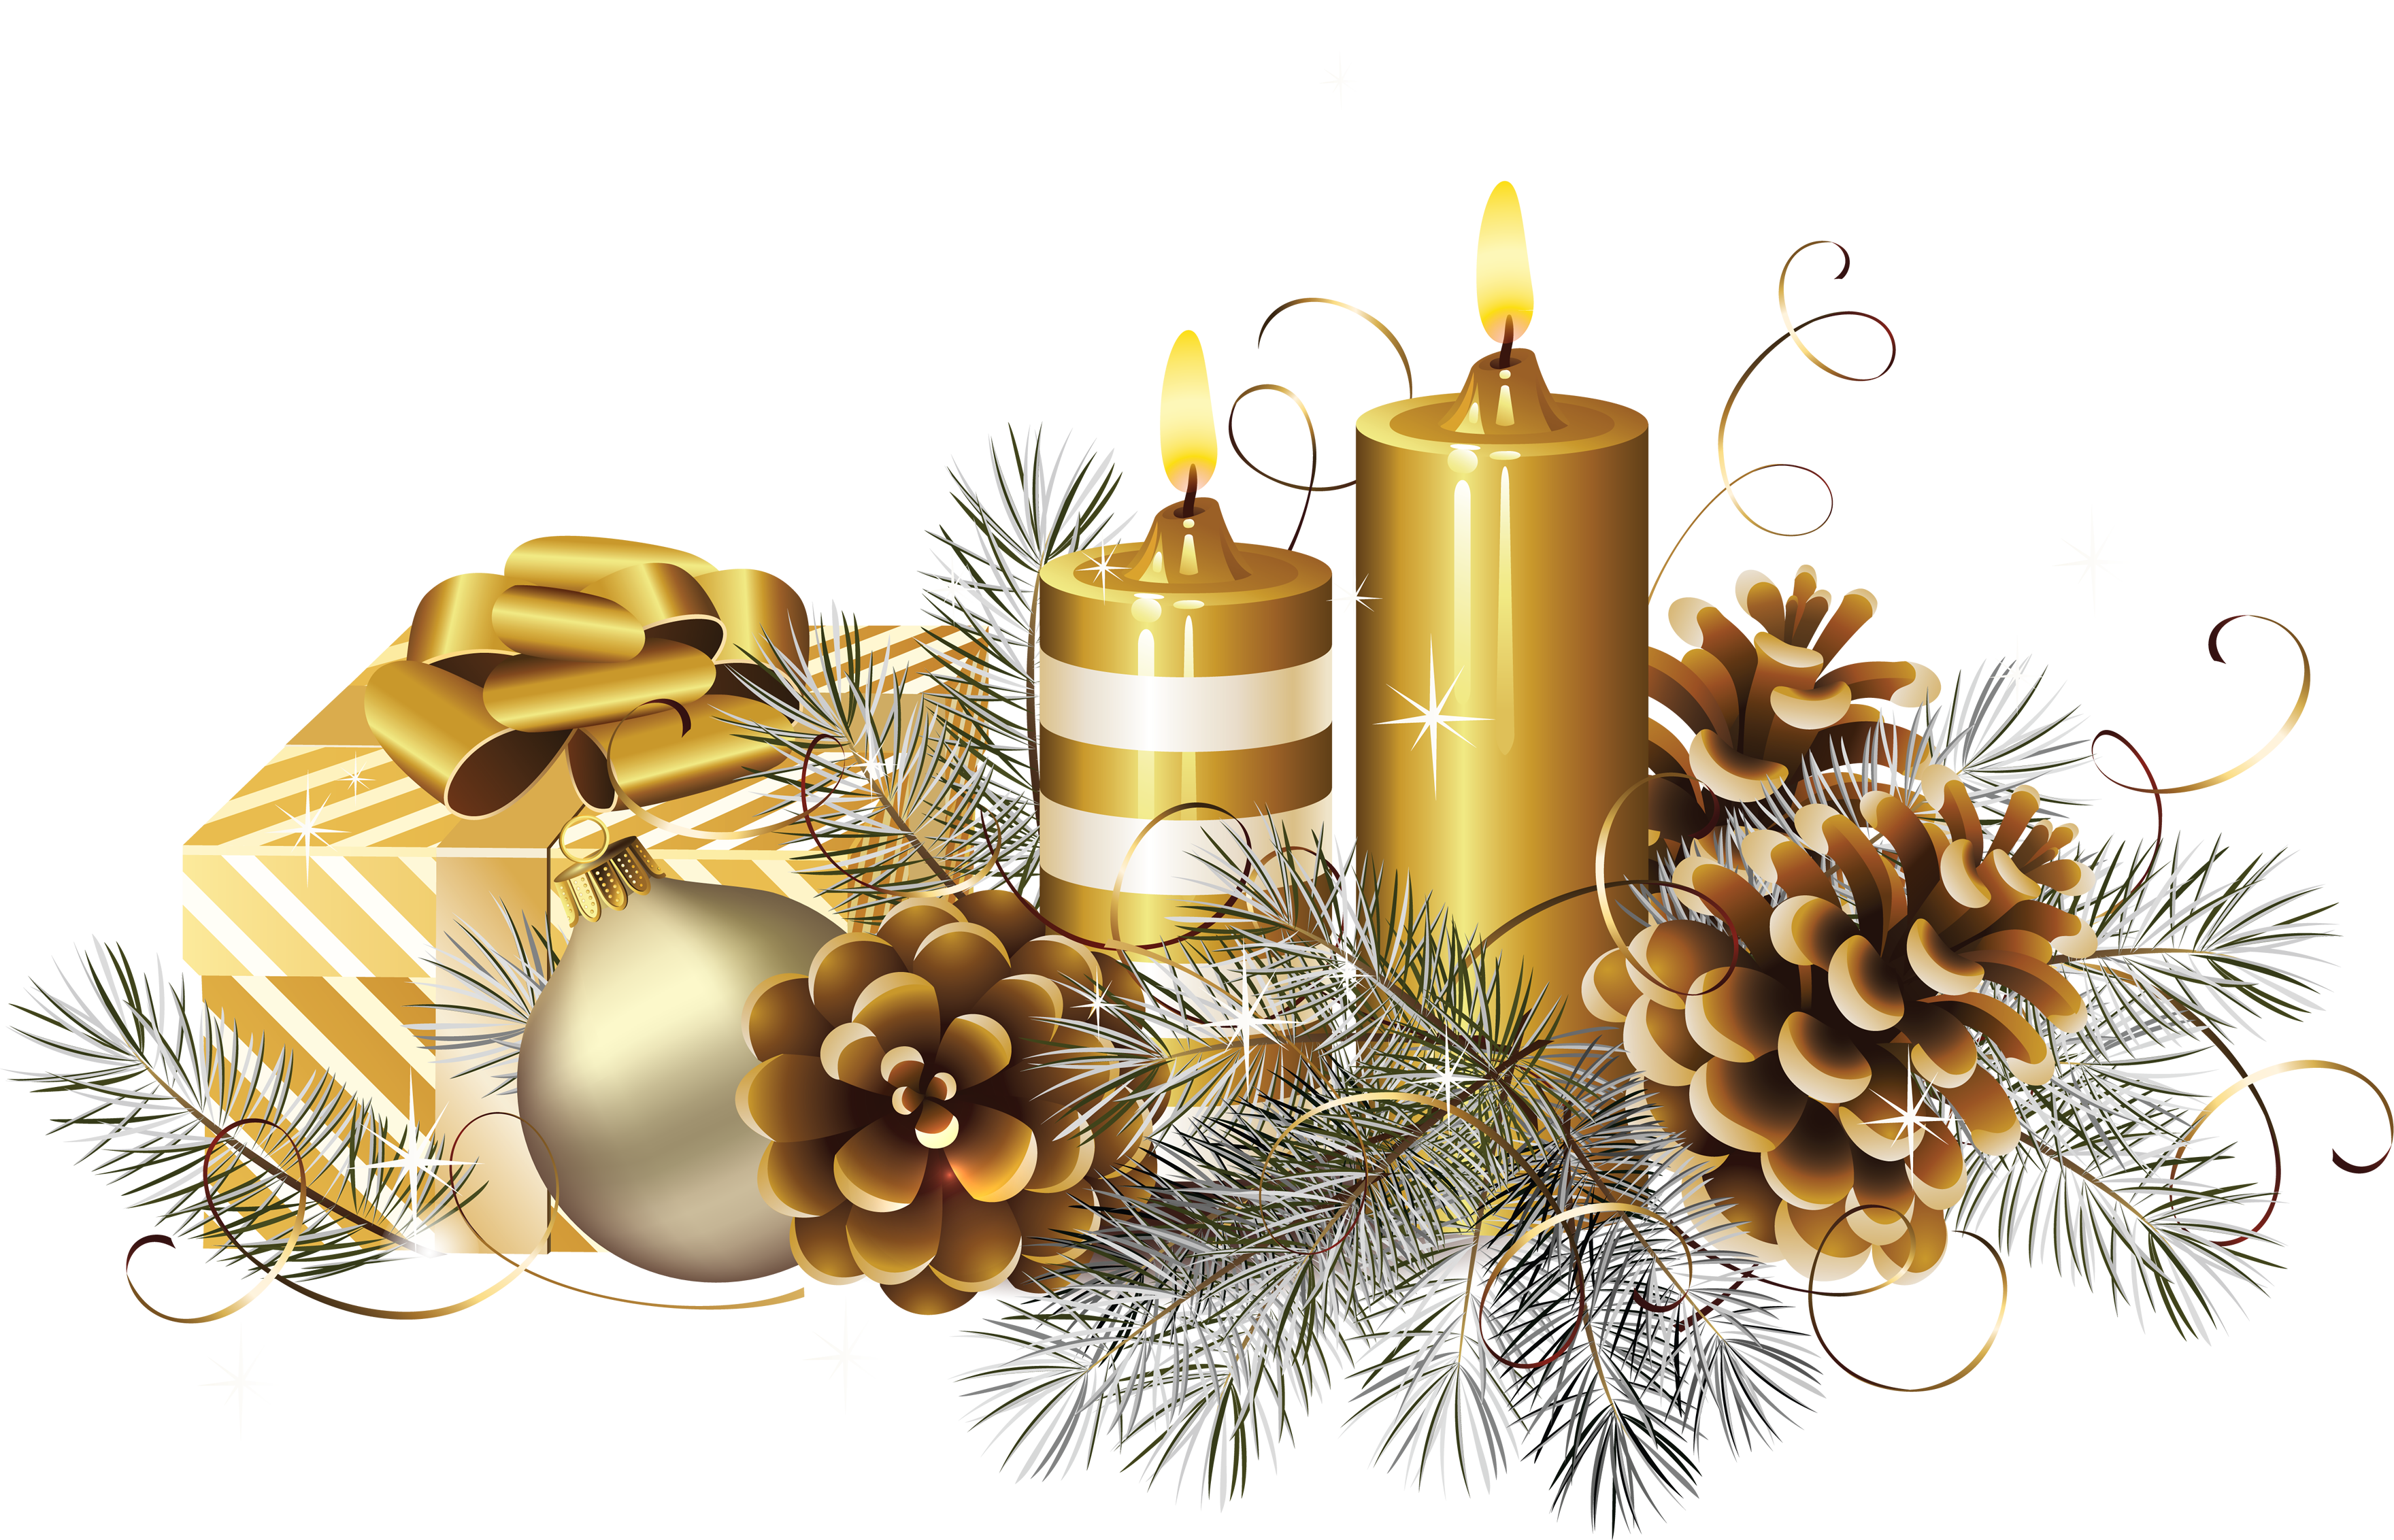 Christmas Candle S Png Image Purepng Free Transparent